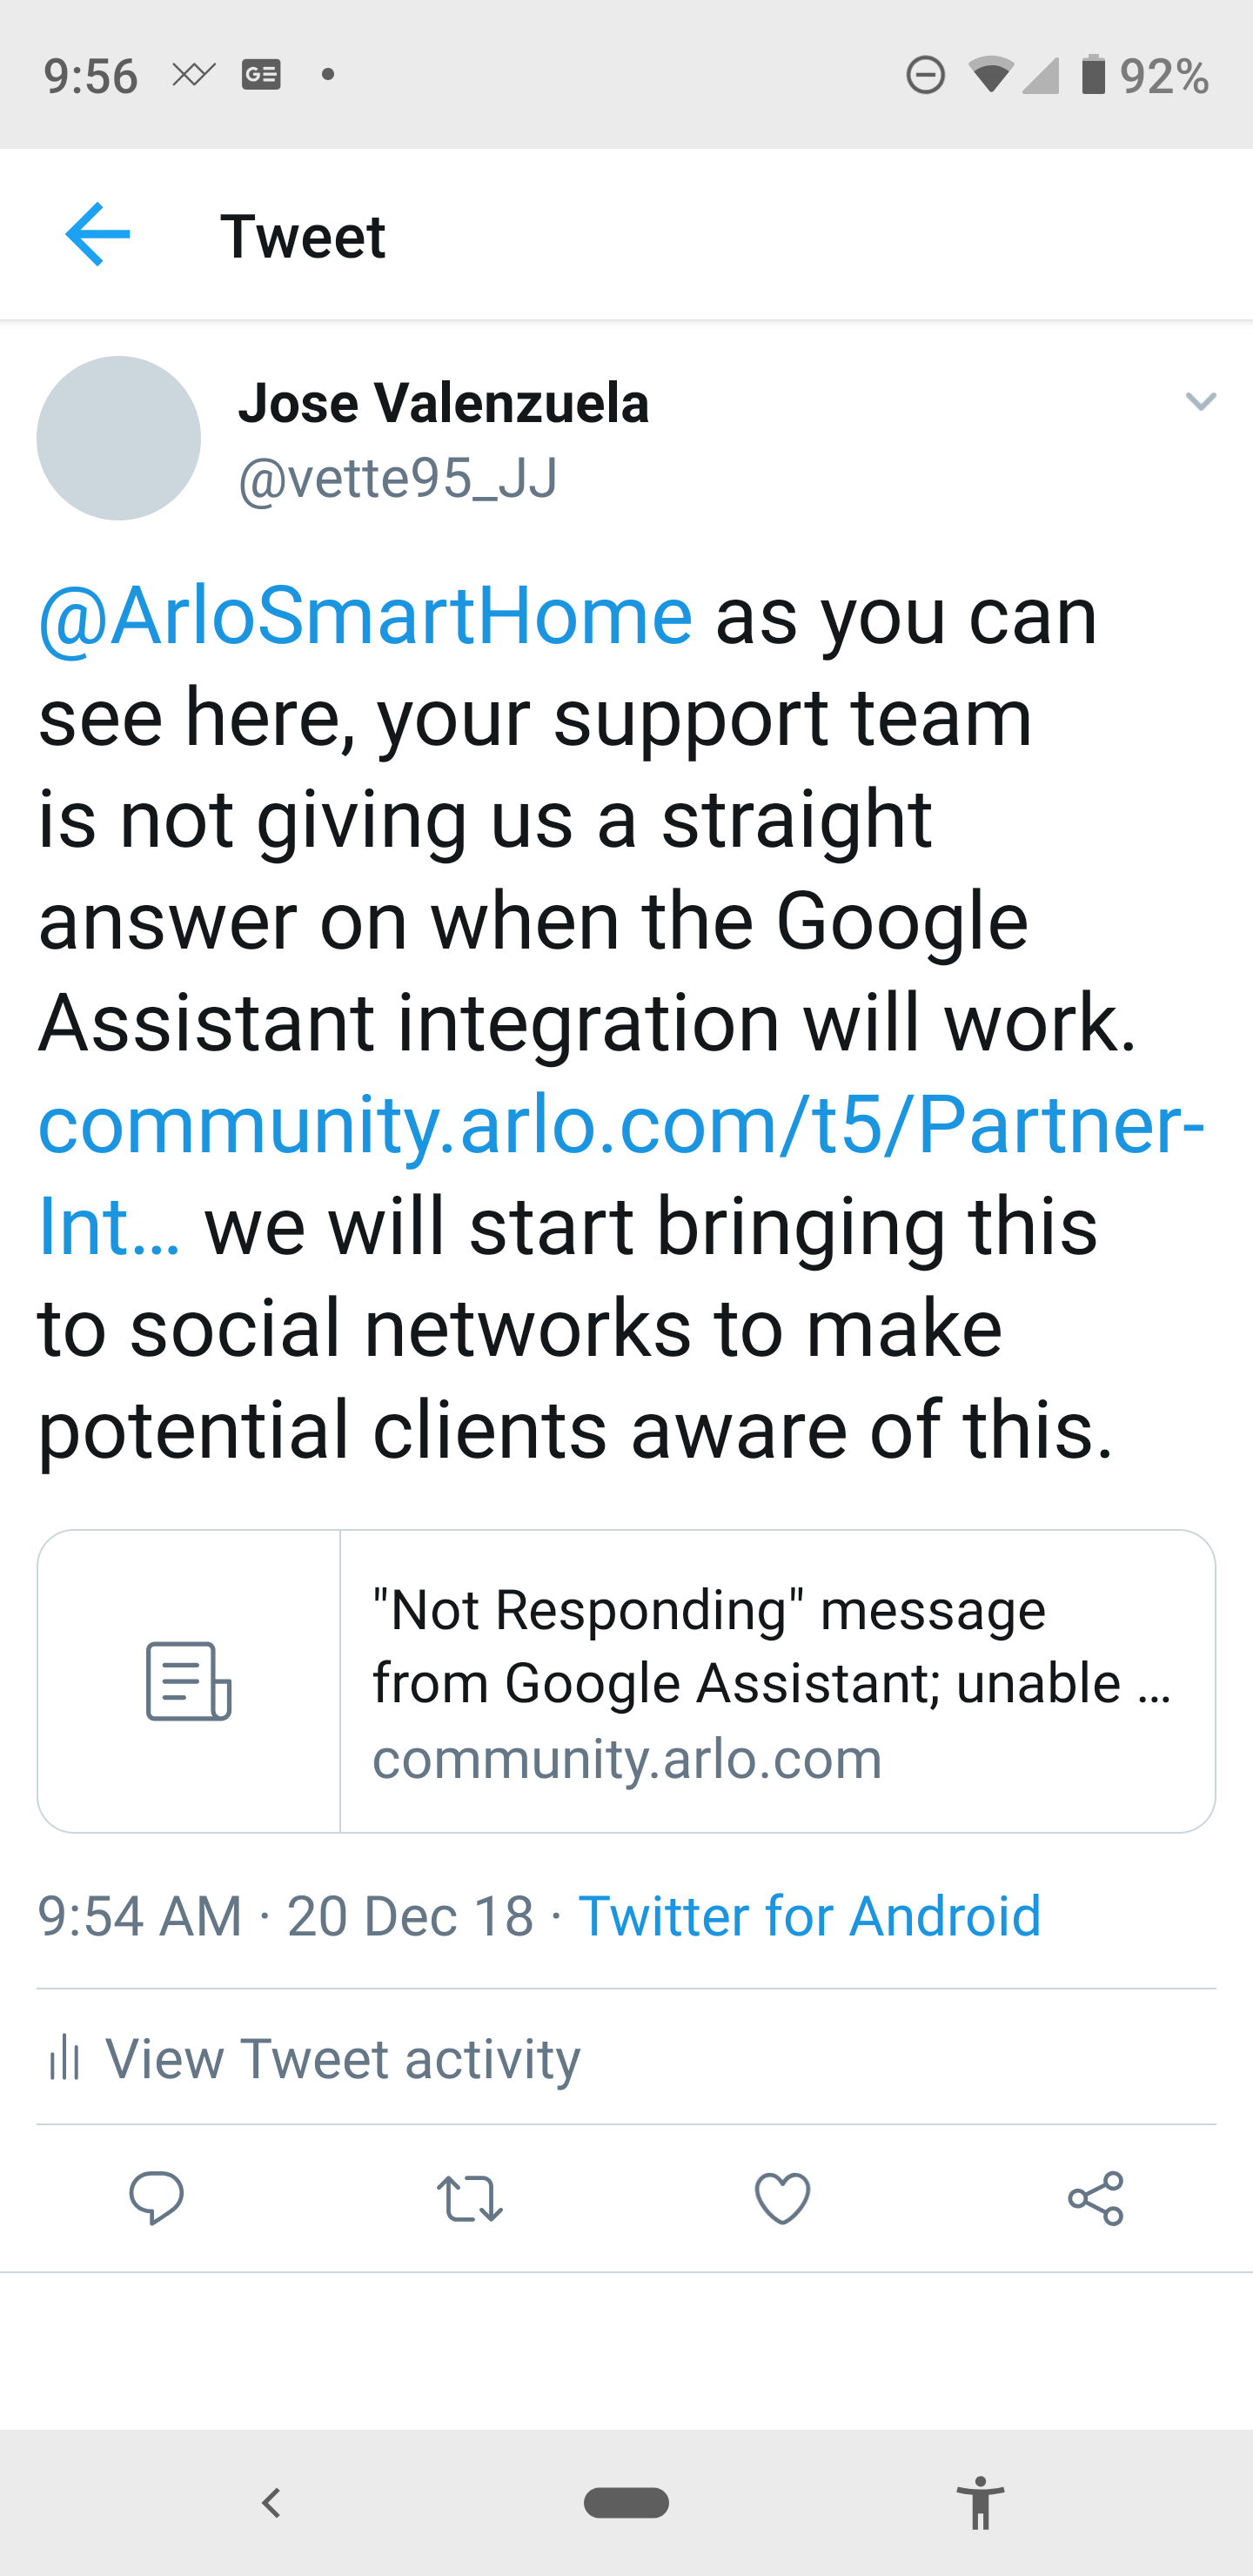 Re: Able to view livestream on Google new smart di    - Page 4